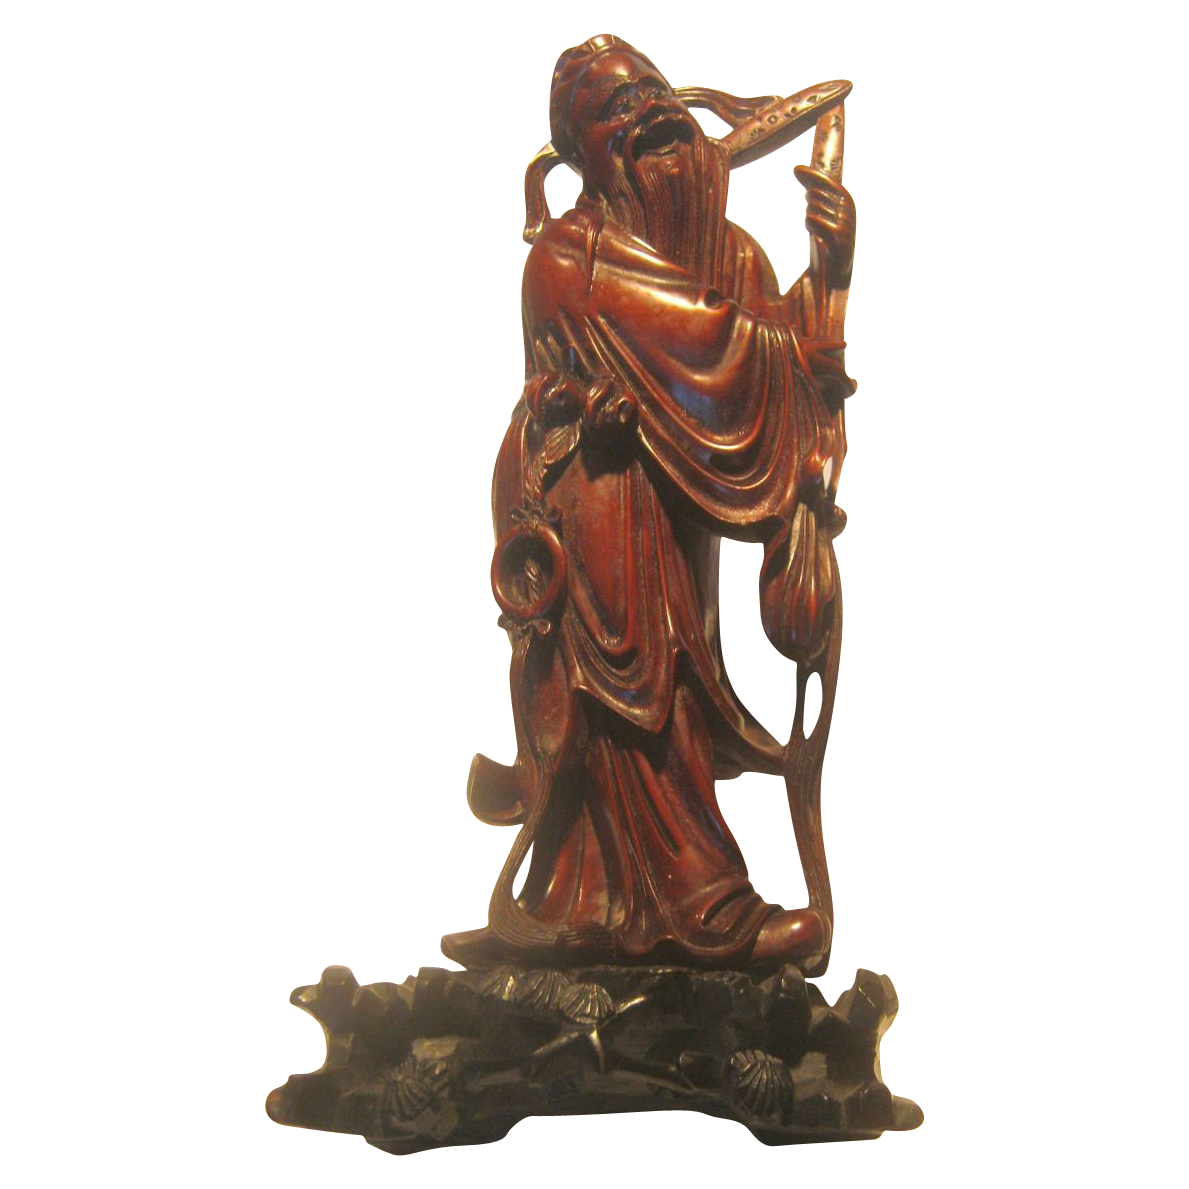 An Old Carved Wood Statue of an Immortal.